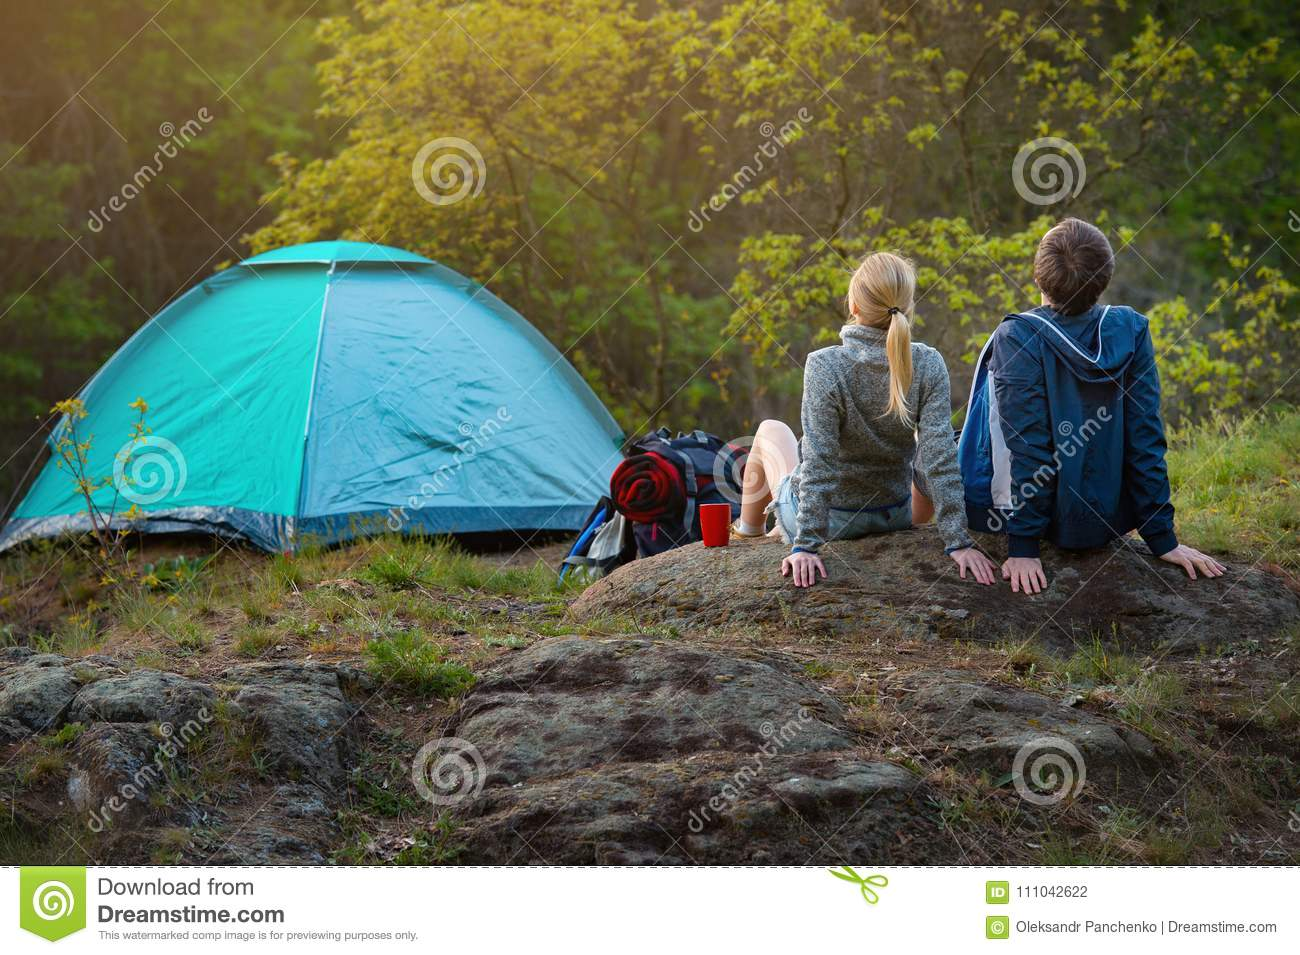 couple of hikers with backpacks resting near the tent in the warm sunshine at sunset. Travel, vacation, holidays and adventure co